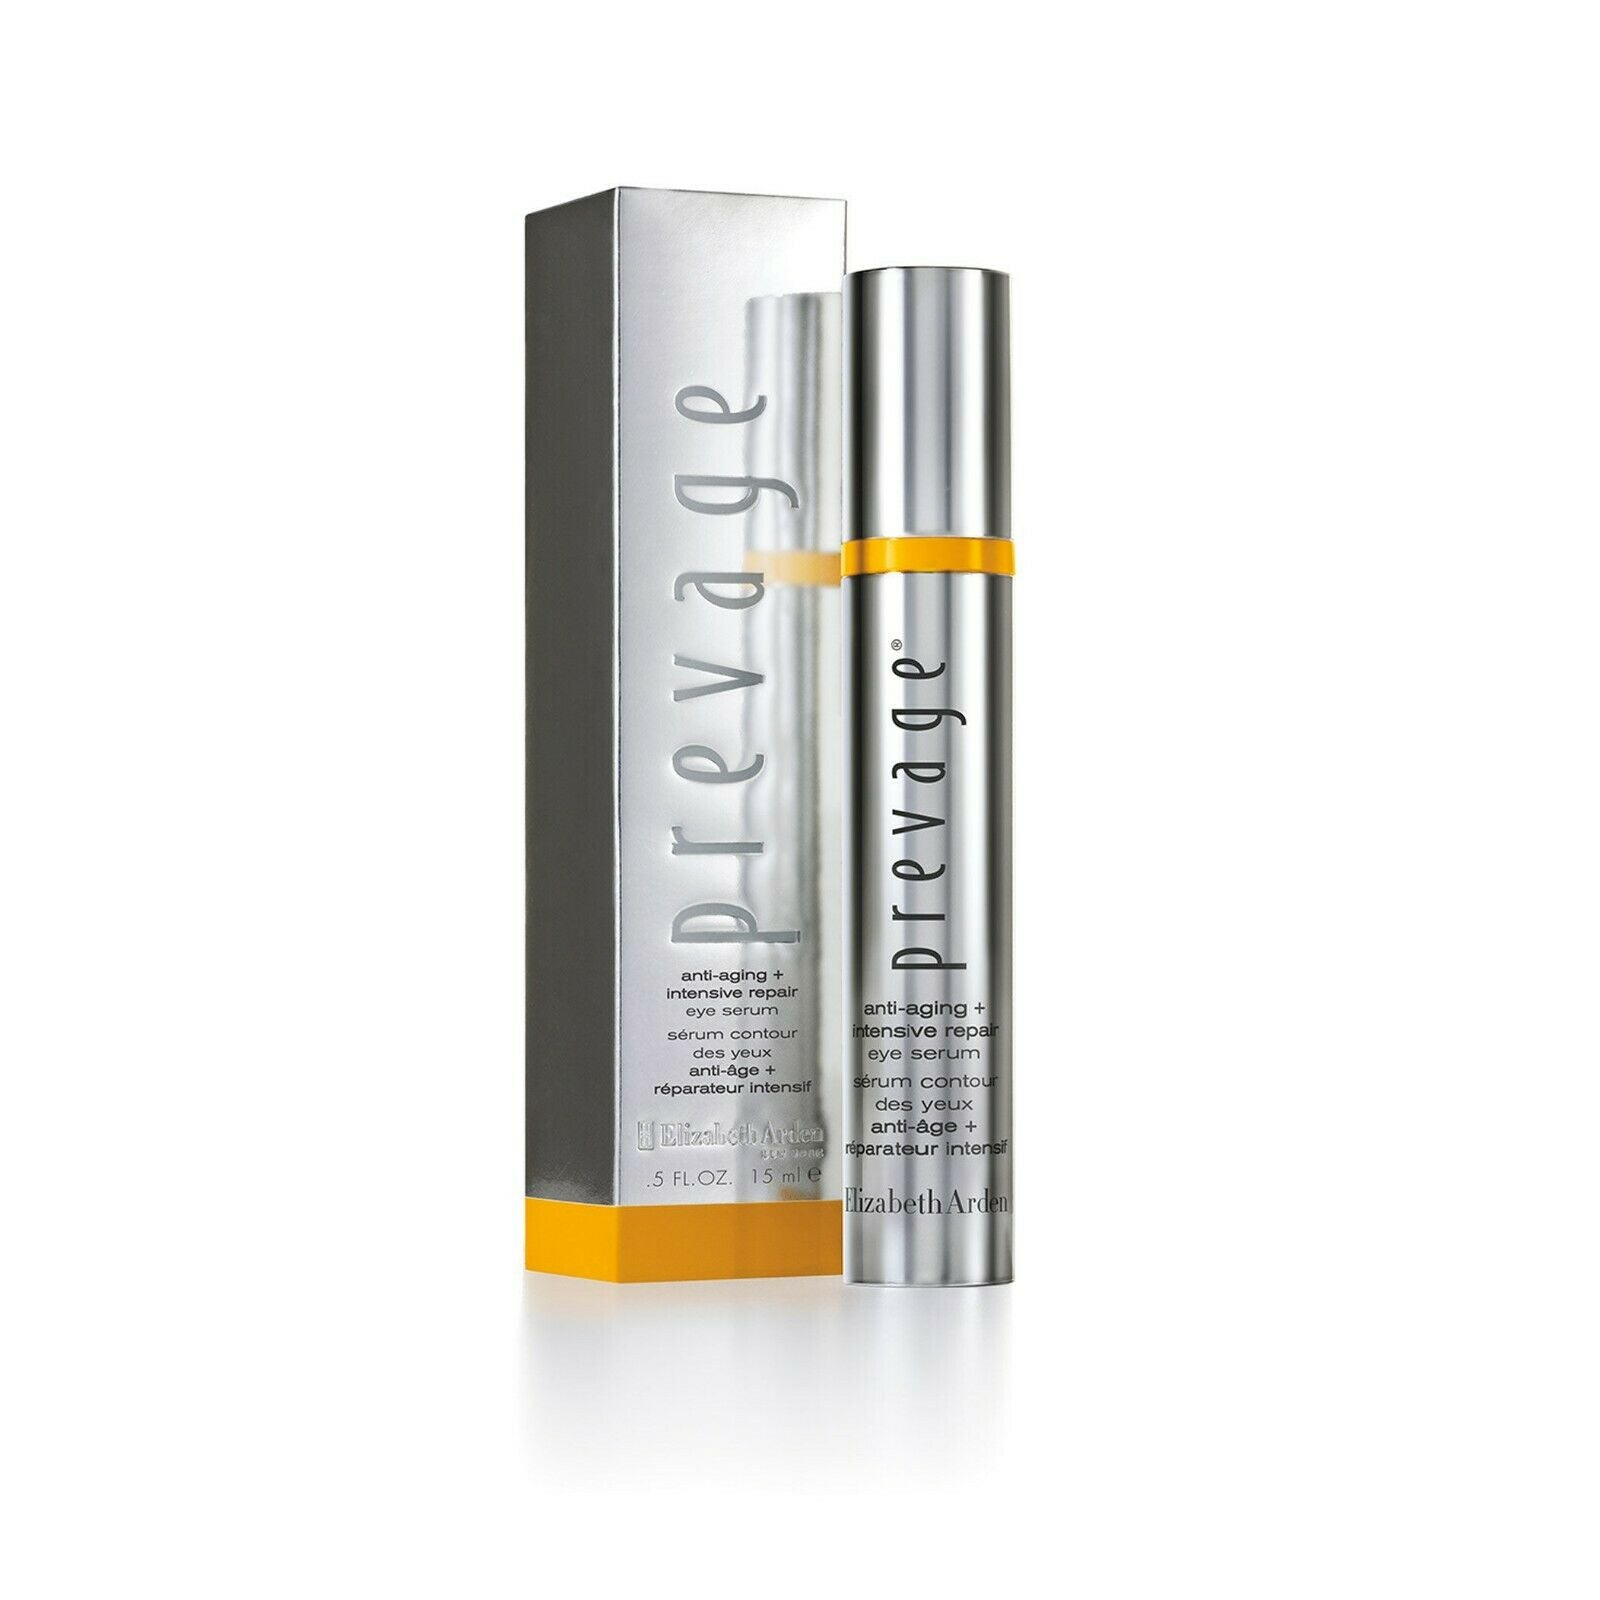 WHOLESALE ELIZABETH ARDEN PREVAGE ANTI-AGING + INTENSIVE REPAIR EYE SERUM 0.5 OZ - 48 PIECE LOT